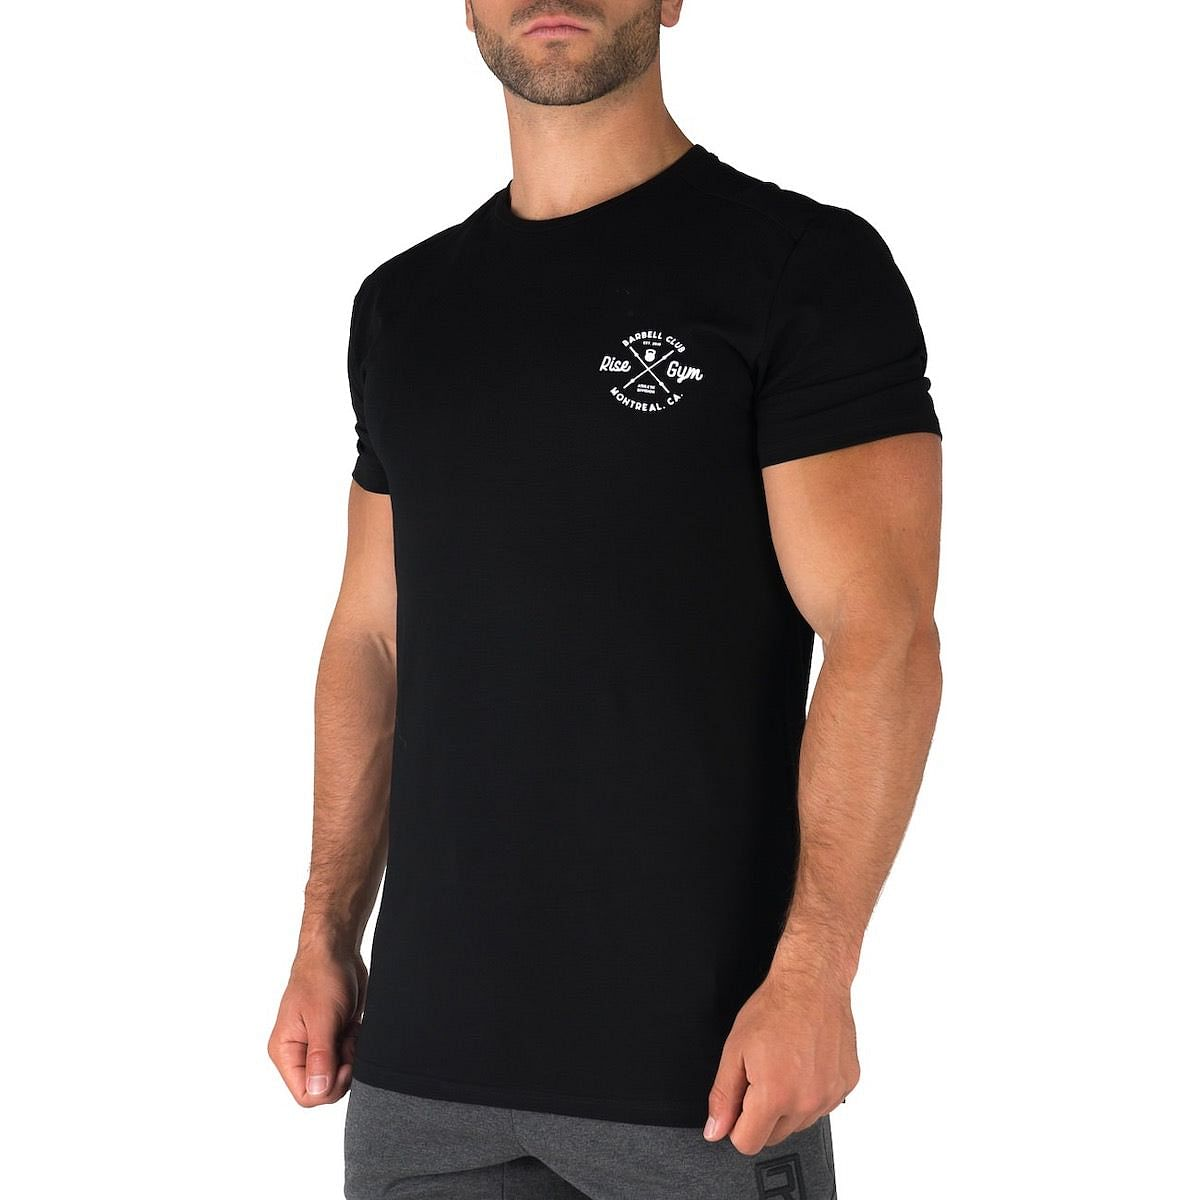 Barbell Club Shirt - Black